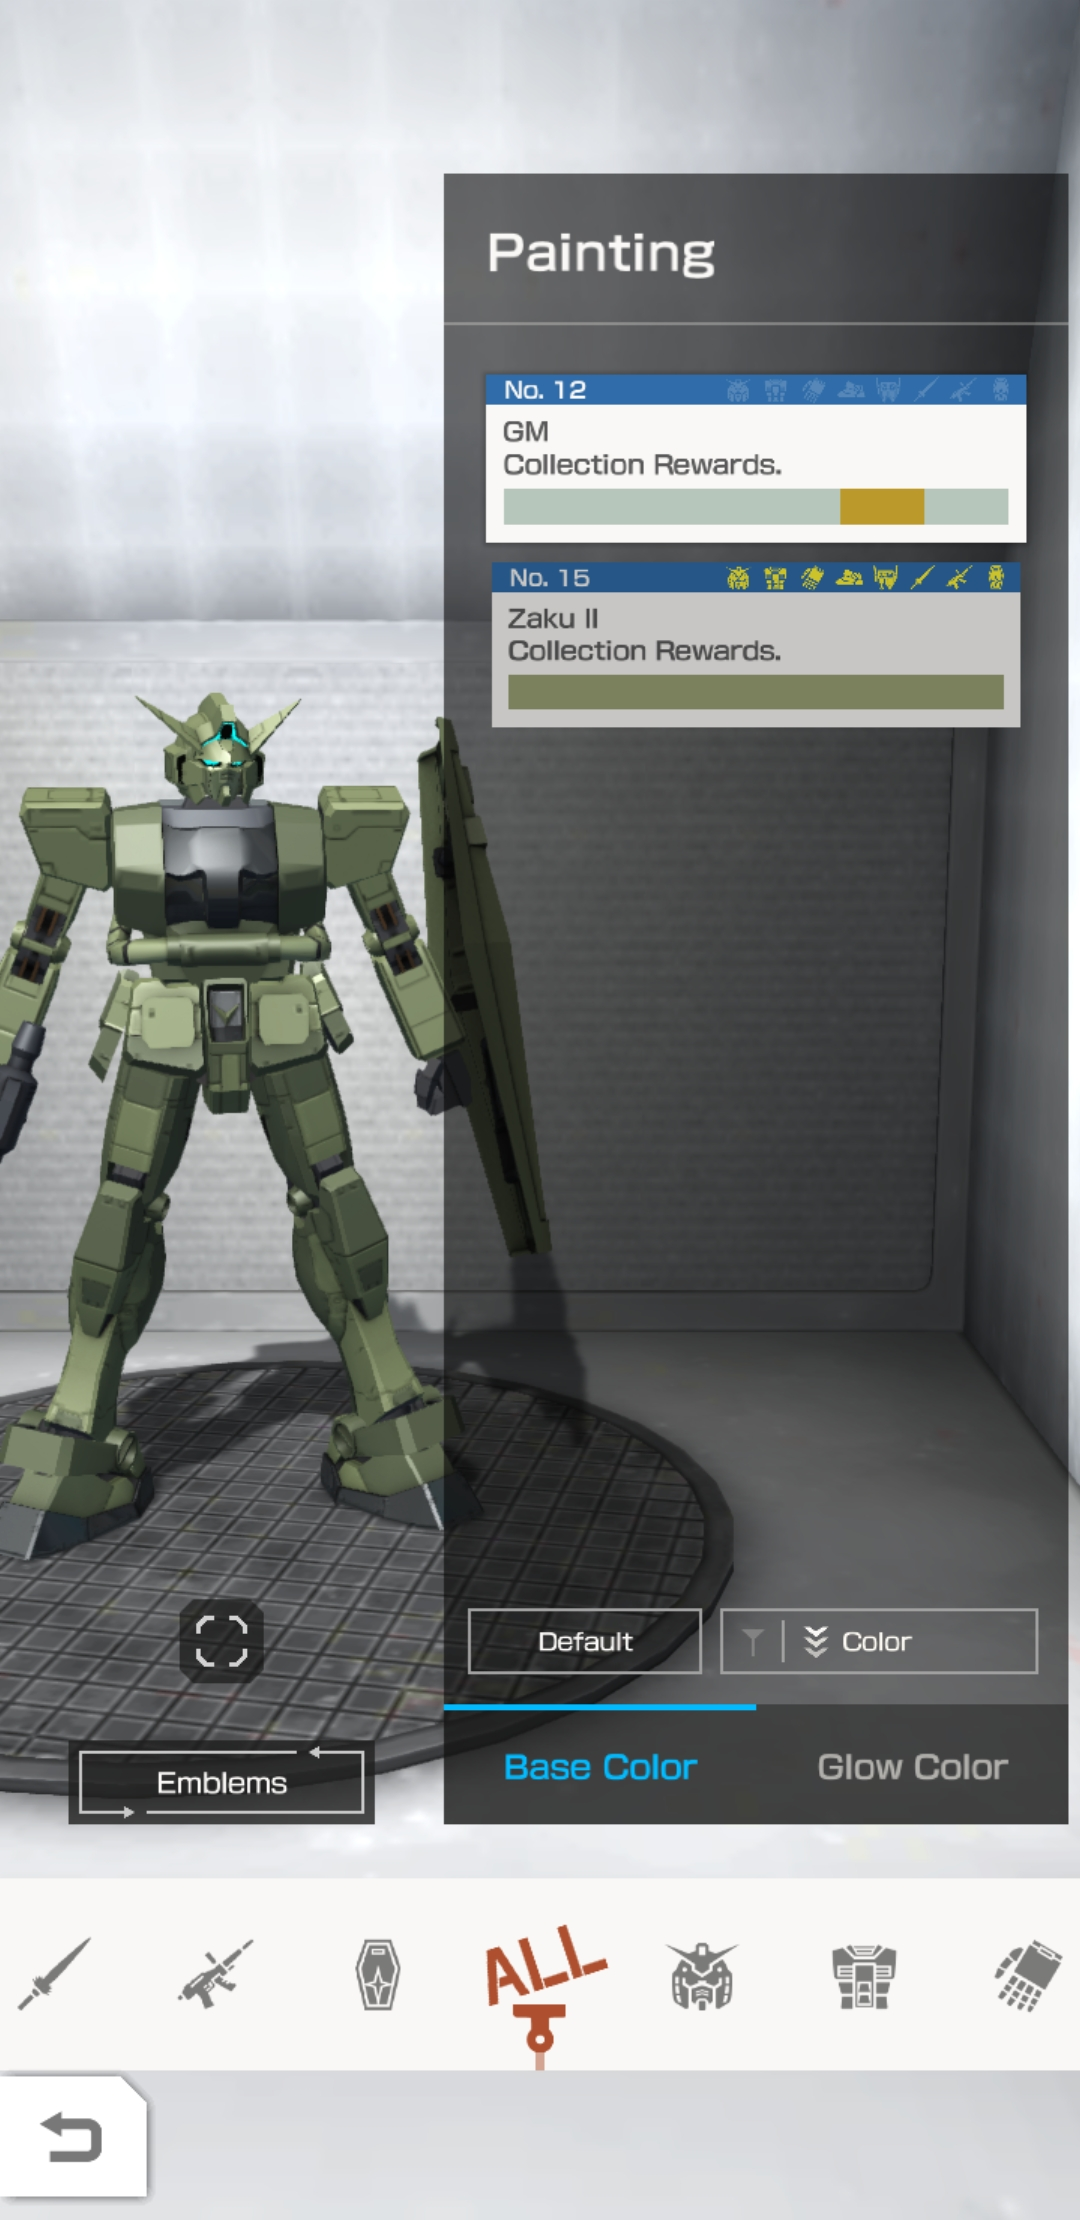 Hands-on] Gundam Battle: Gunpla Warfare is a slick mecha